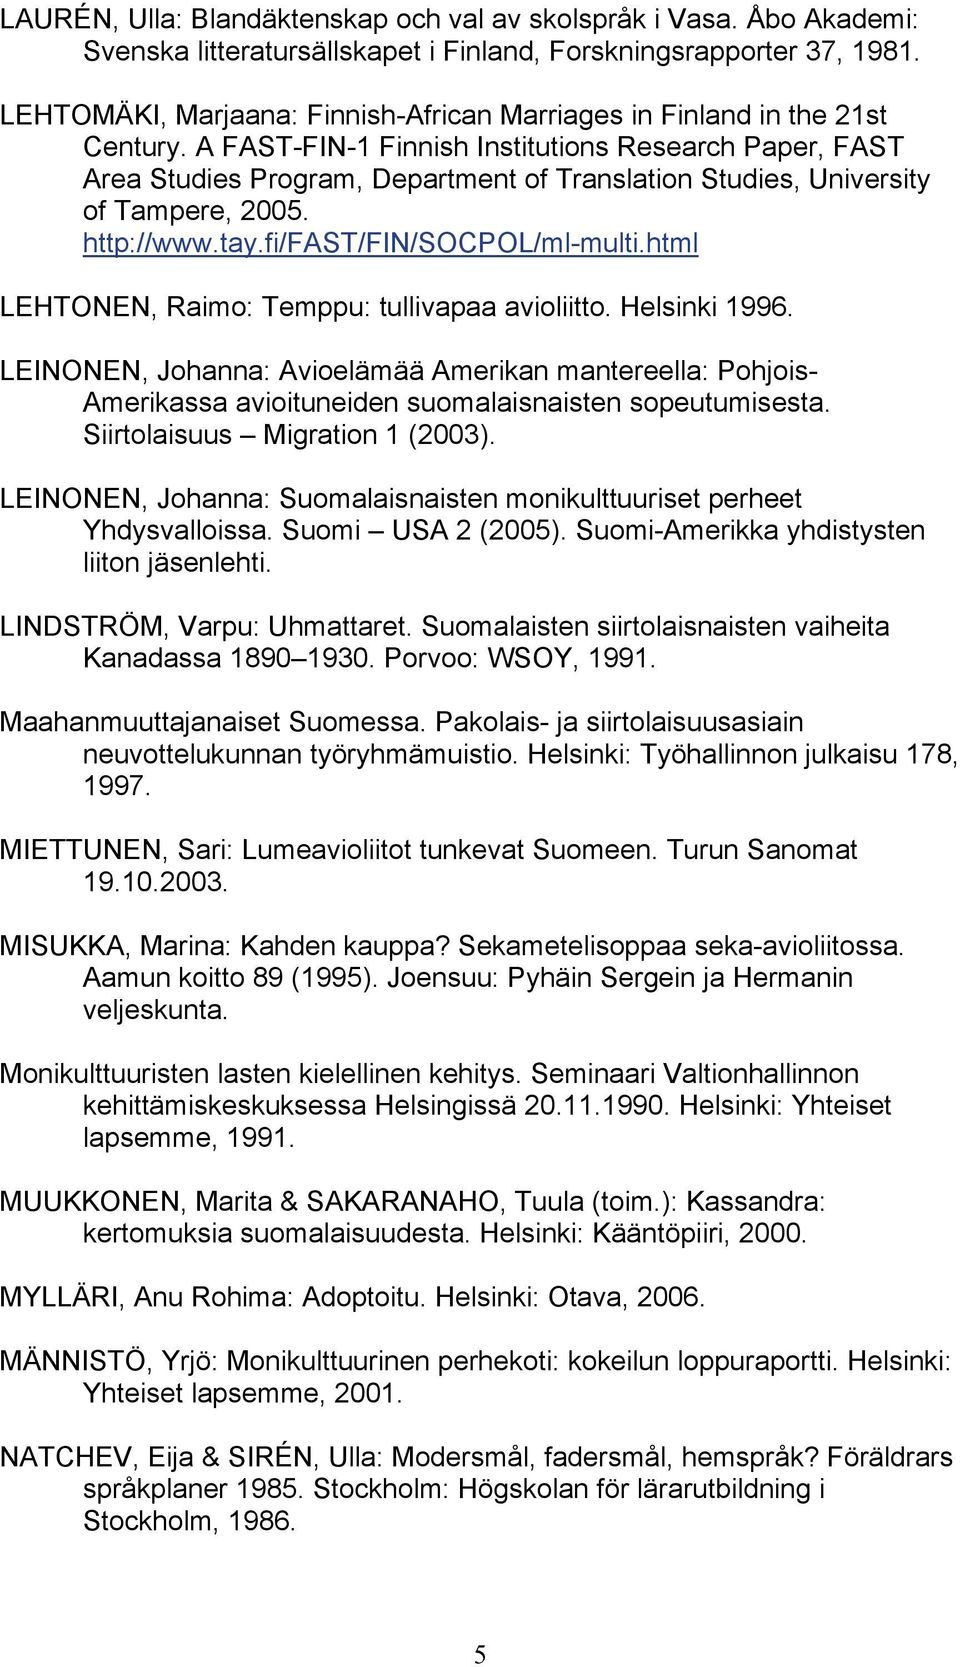 A FAST-FIN-1 Finnish Institutions Research Paper, FAST Area Studies Program, Department of Translation Studies, University of Tampere, 2005. http://www.tay.fi/fast/fin/socpol/ml-multi.